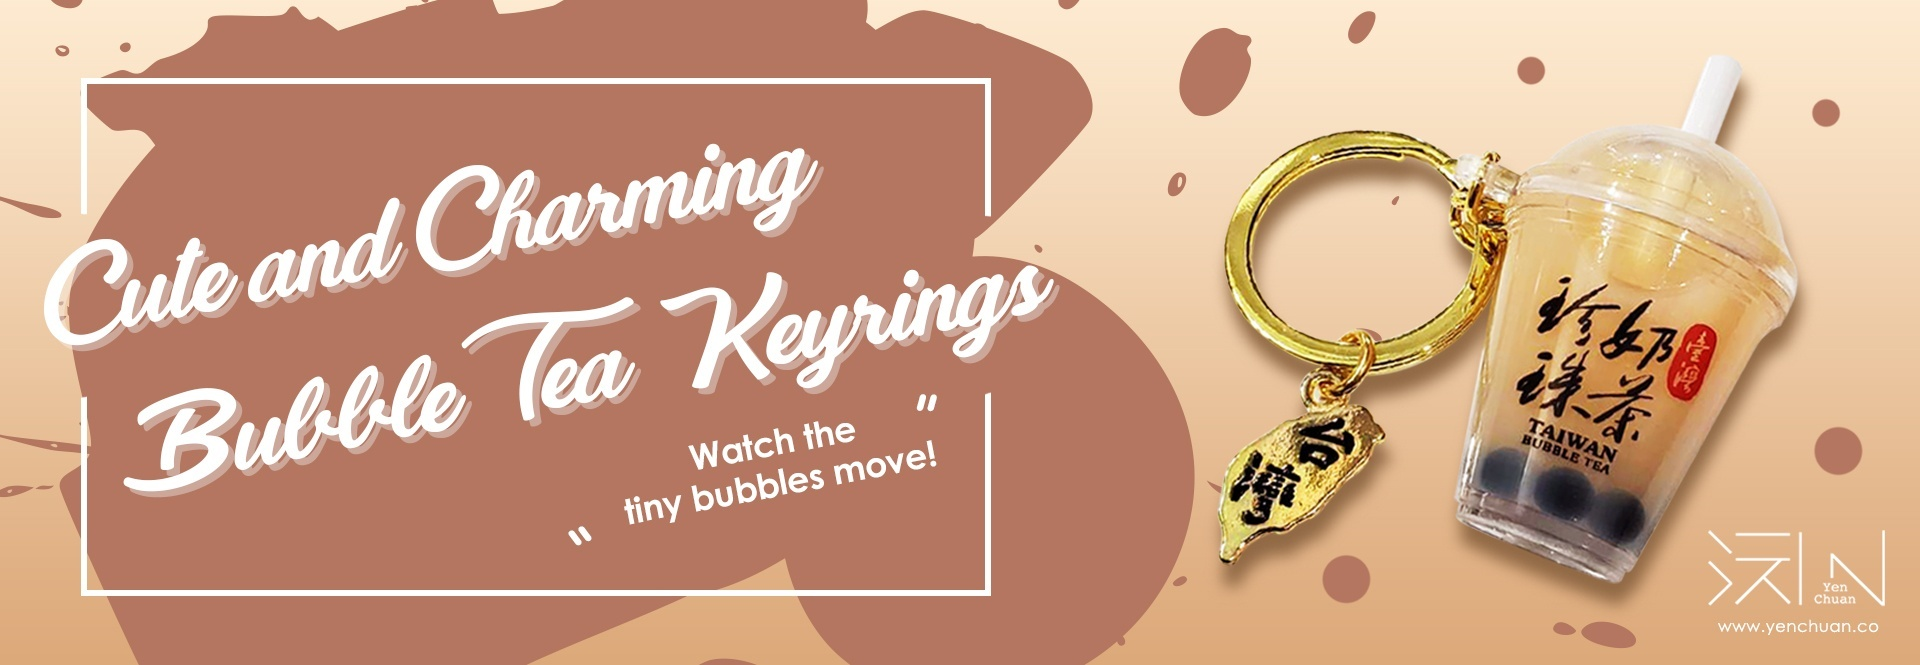 bubble tea keyring banner